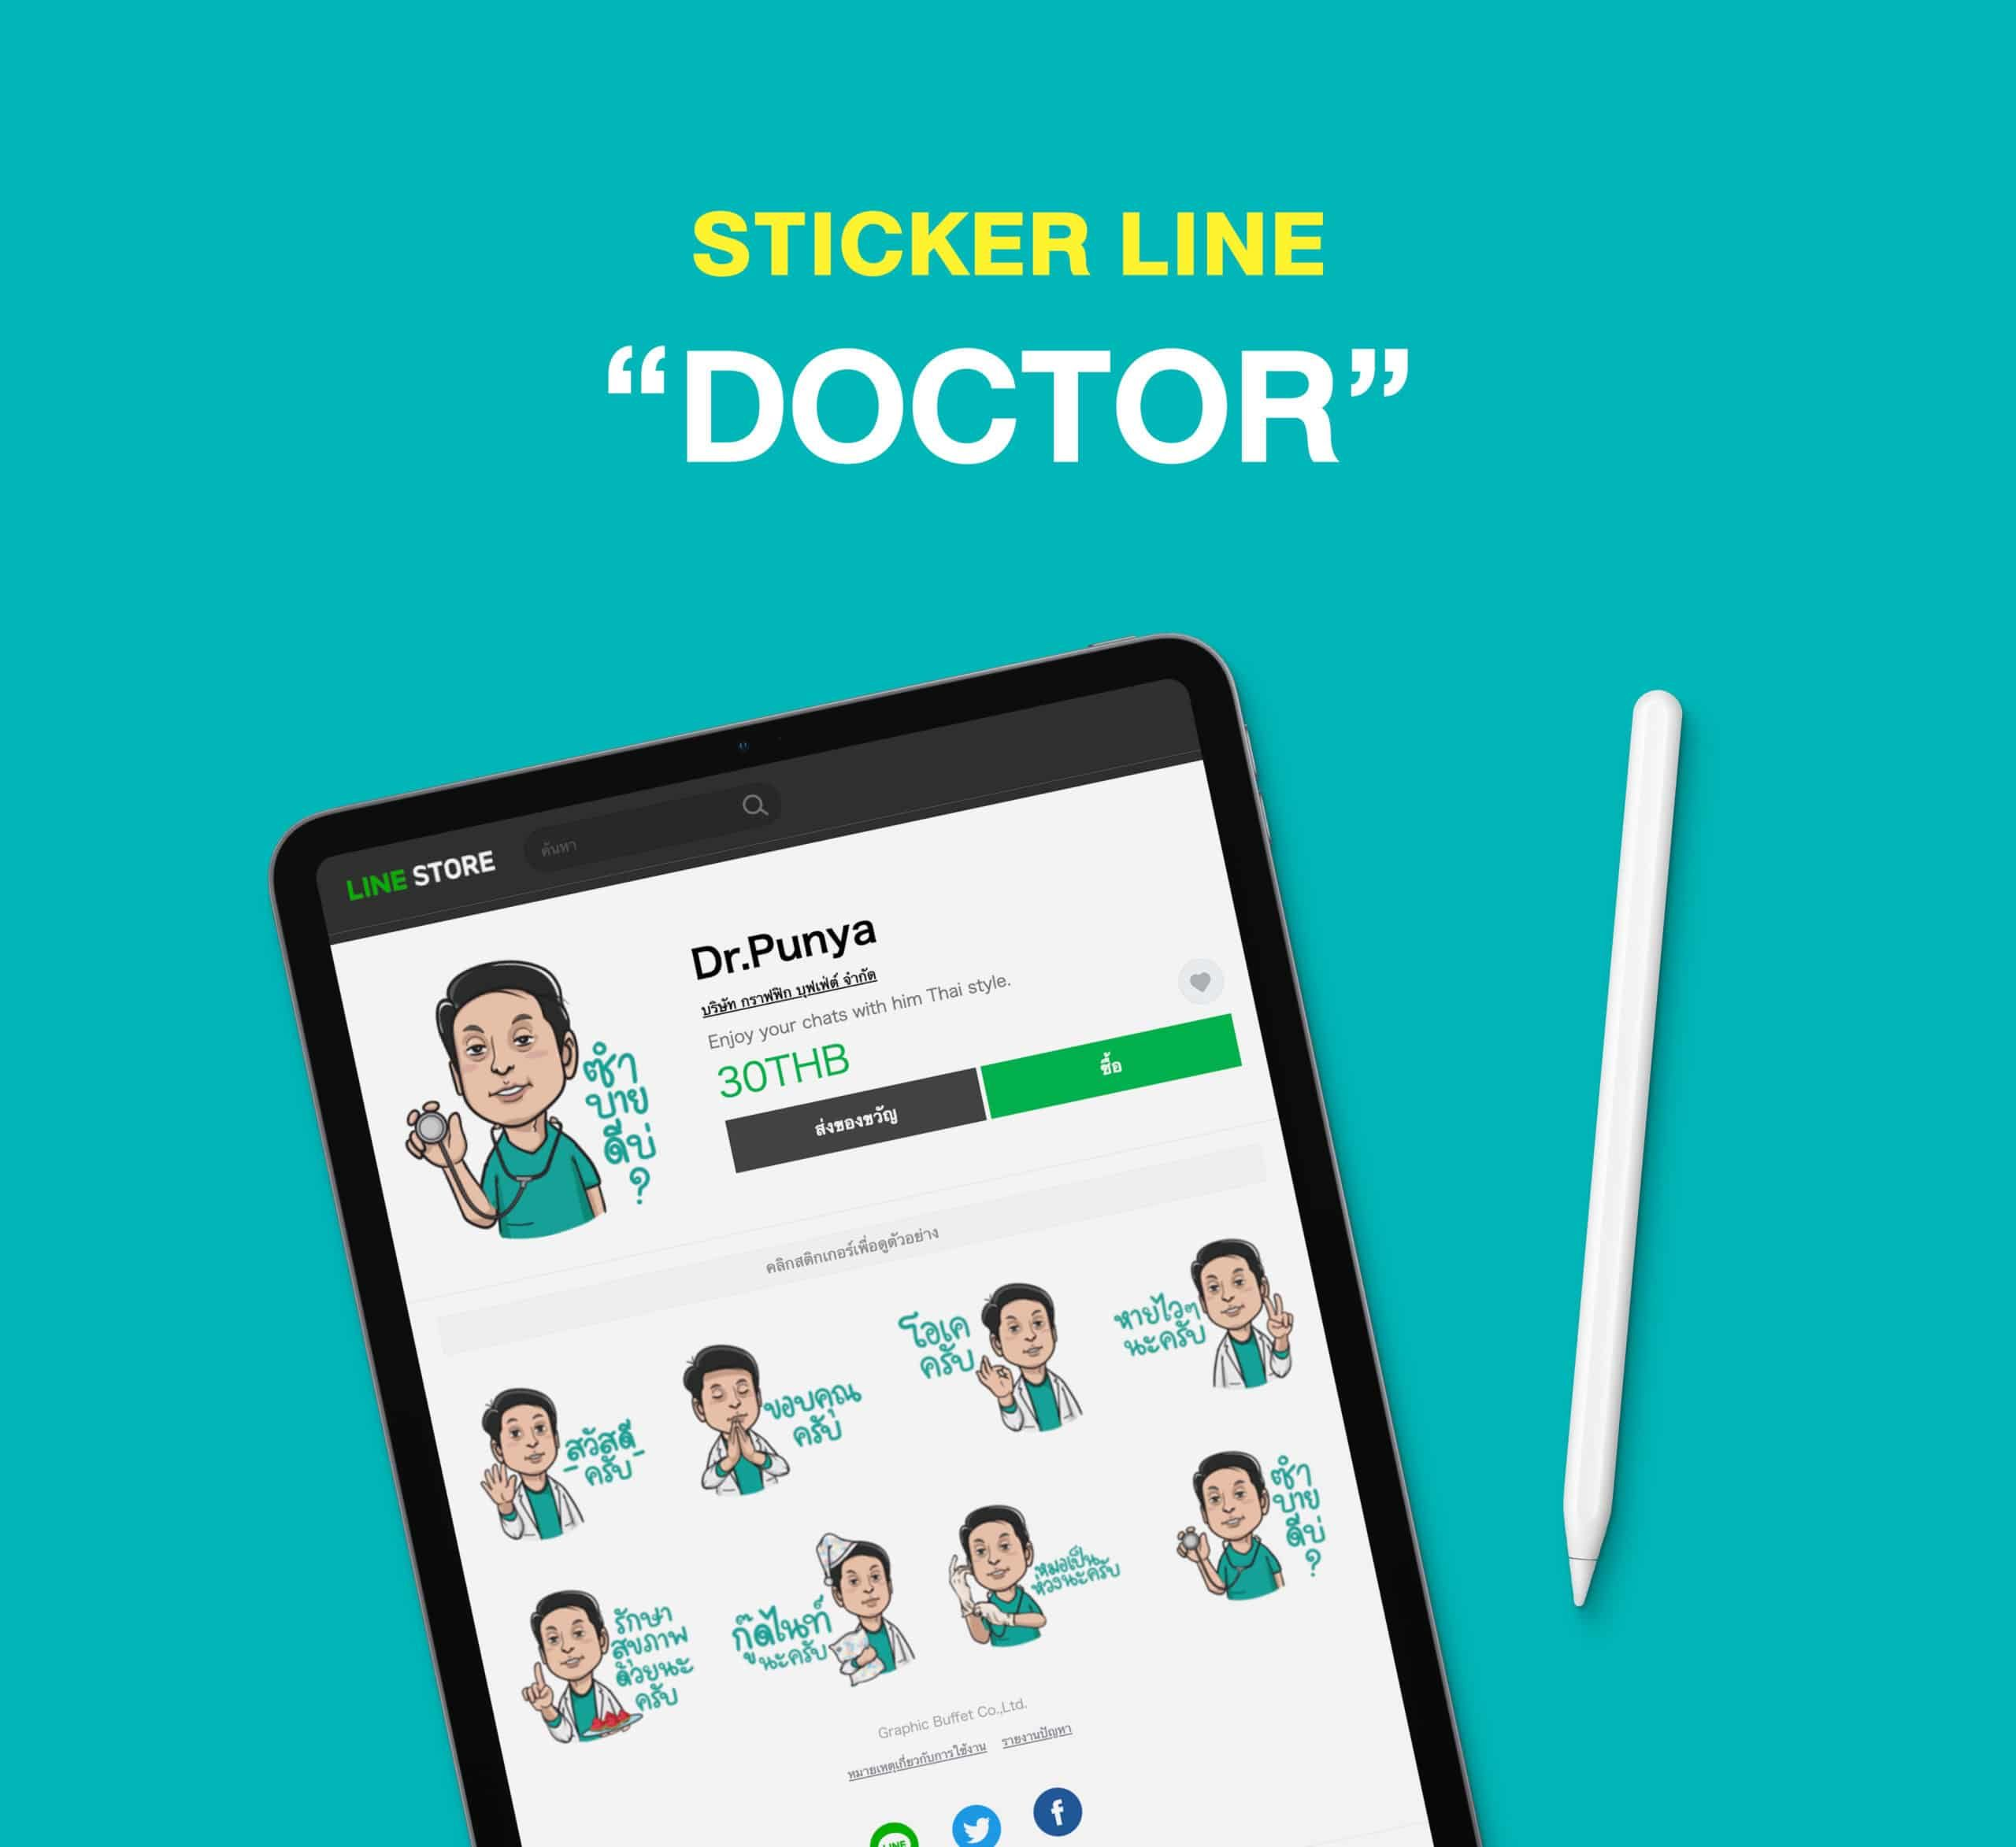 ddoctor StickerLine Dr. Punya